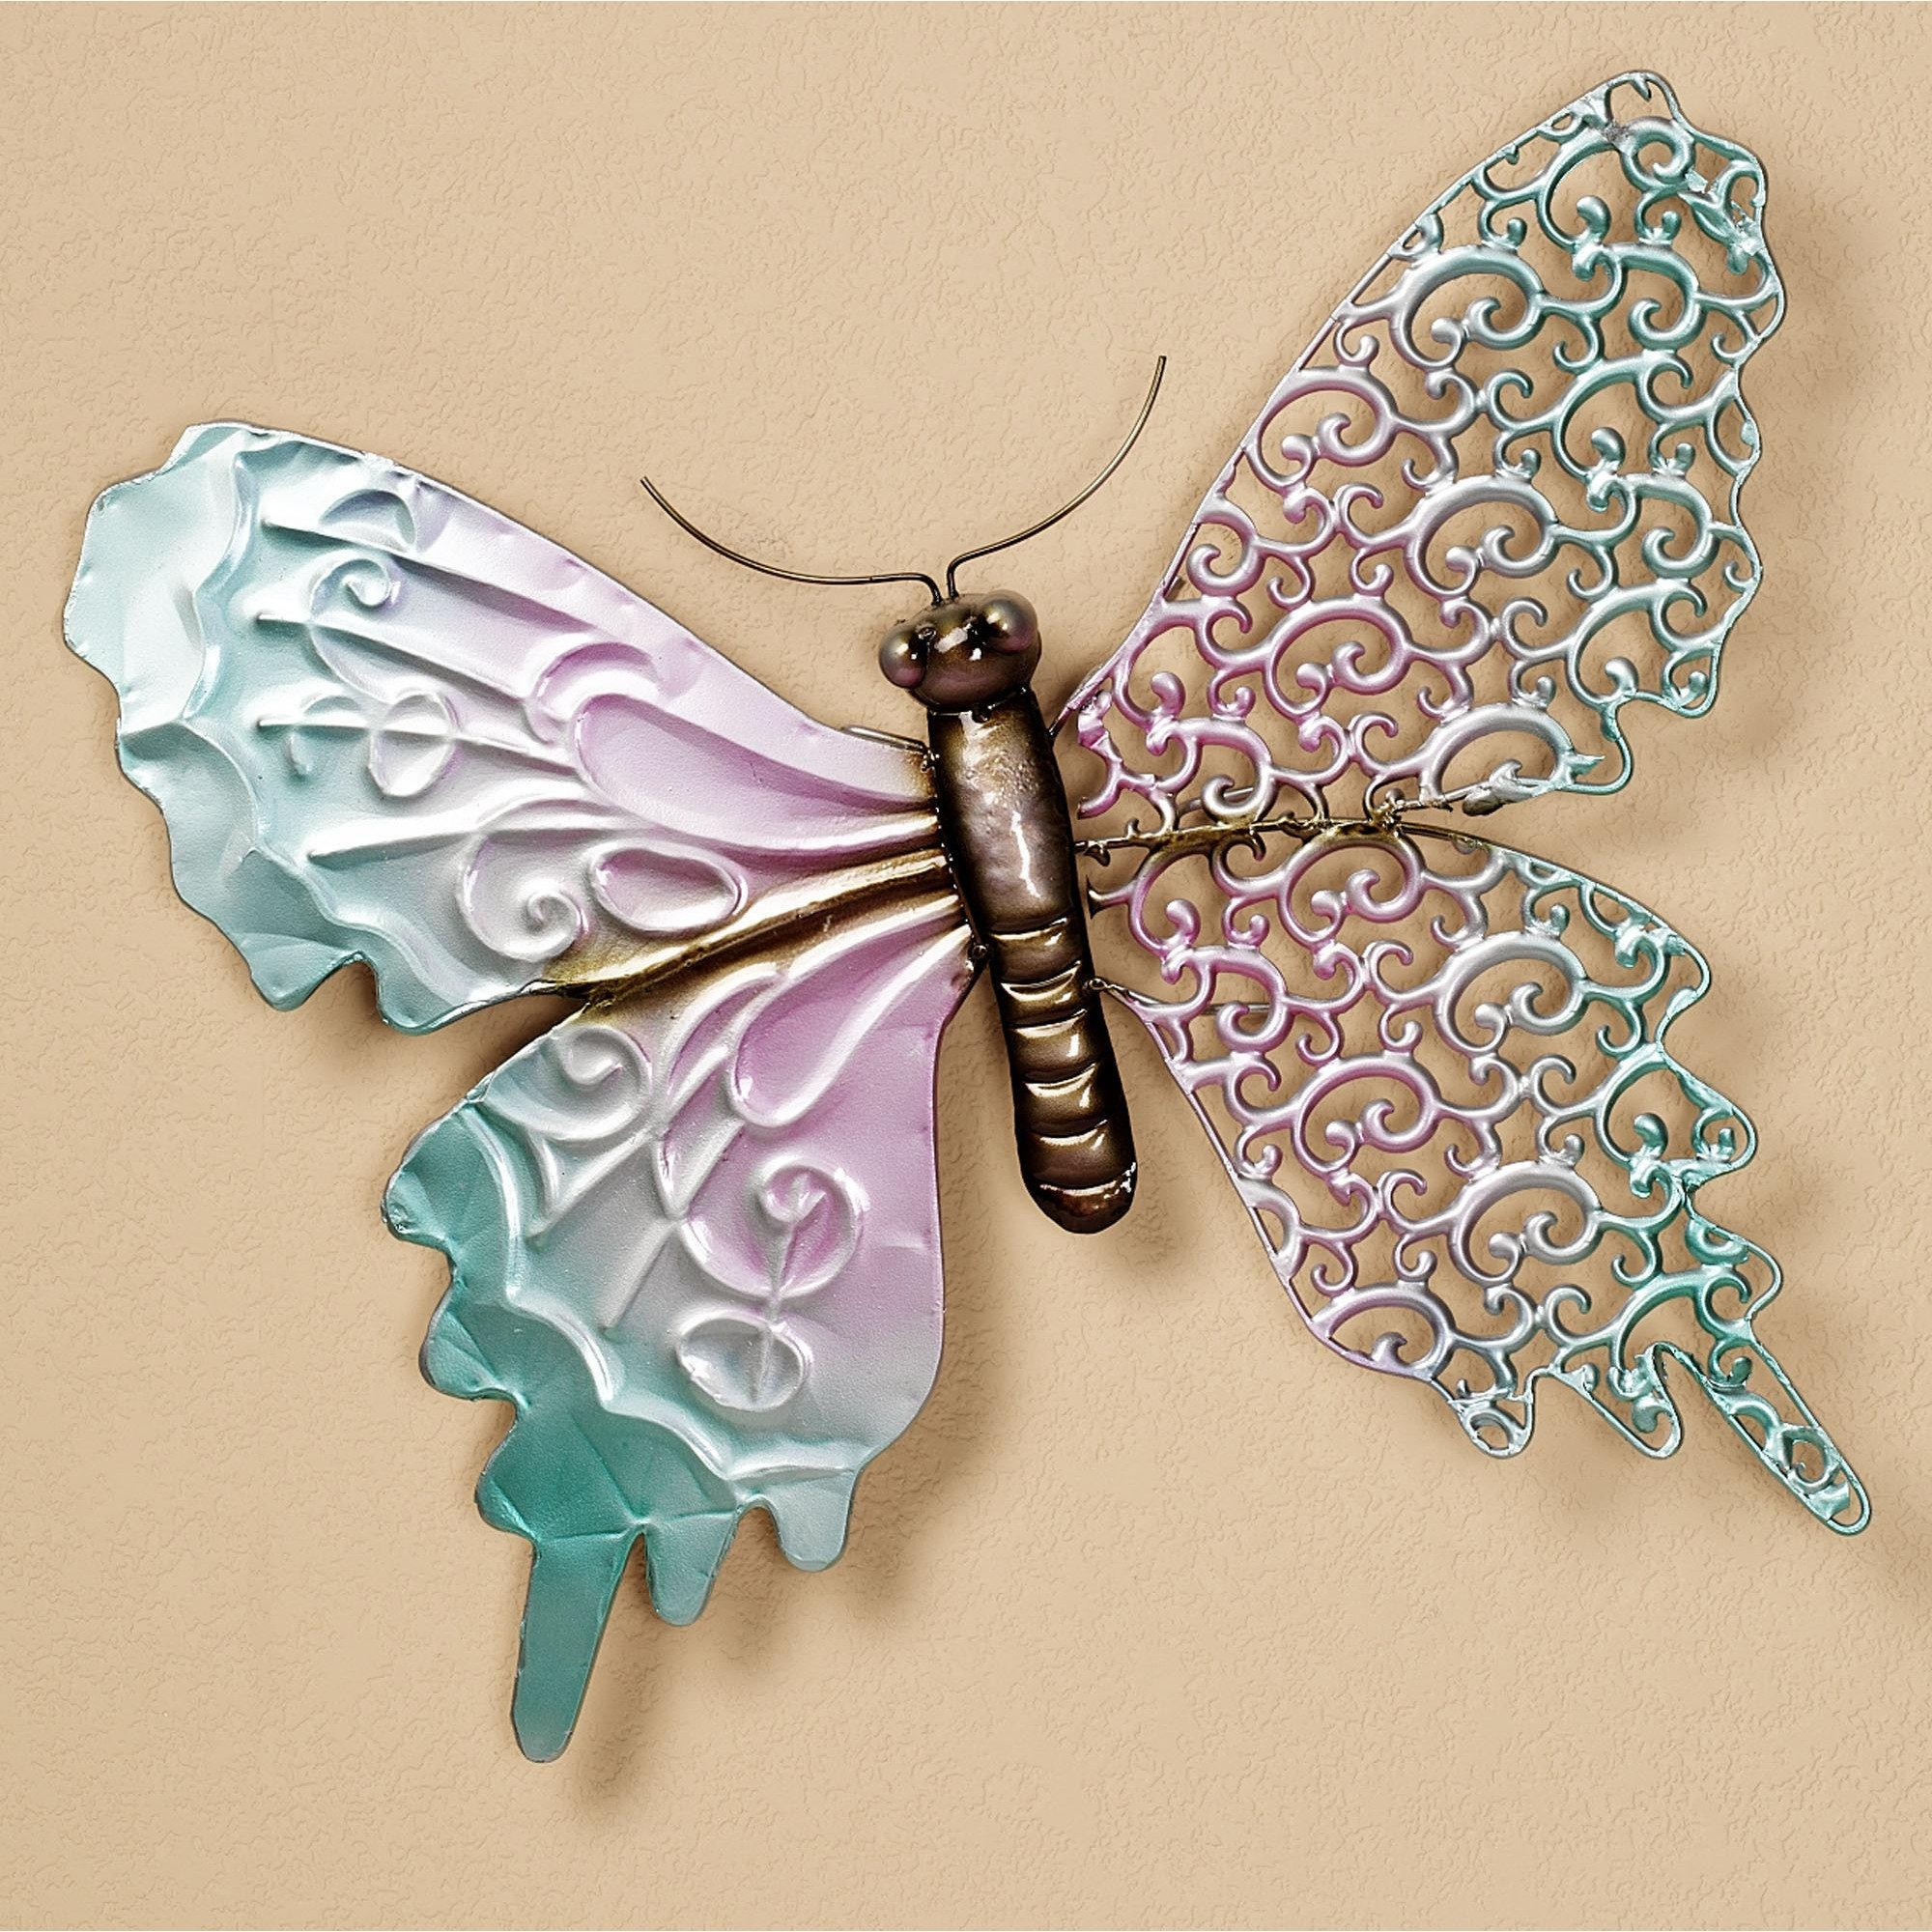 20+ Choices of Large Metal Butterfly Wall Art